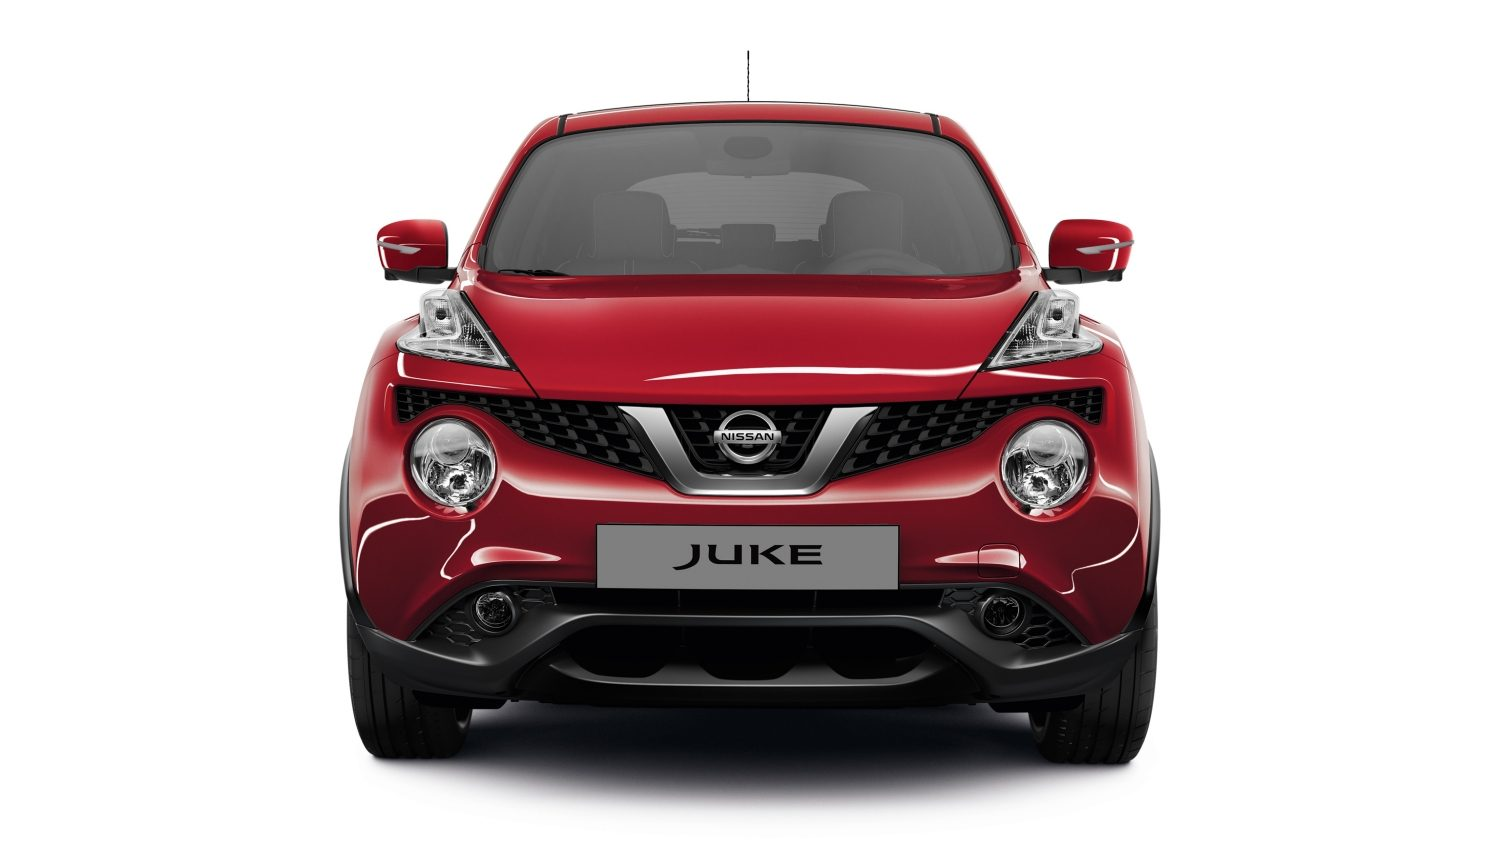 compact mini suv design nissan juke nissan. Black Bedroom Furniture Sets. Home Design Ideas